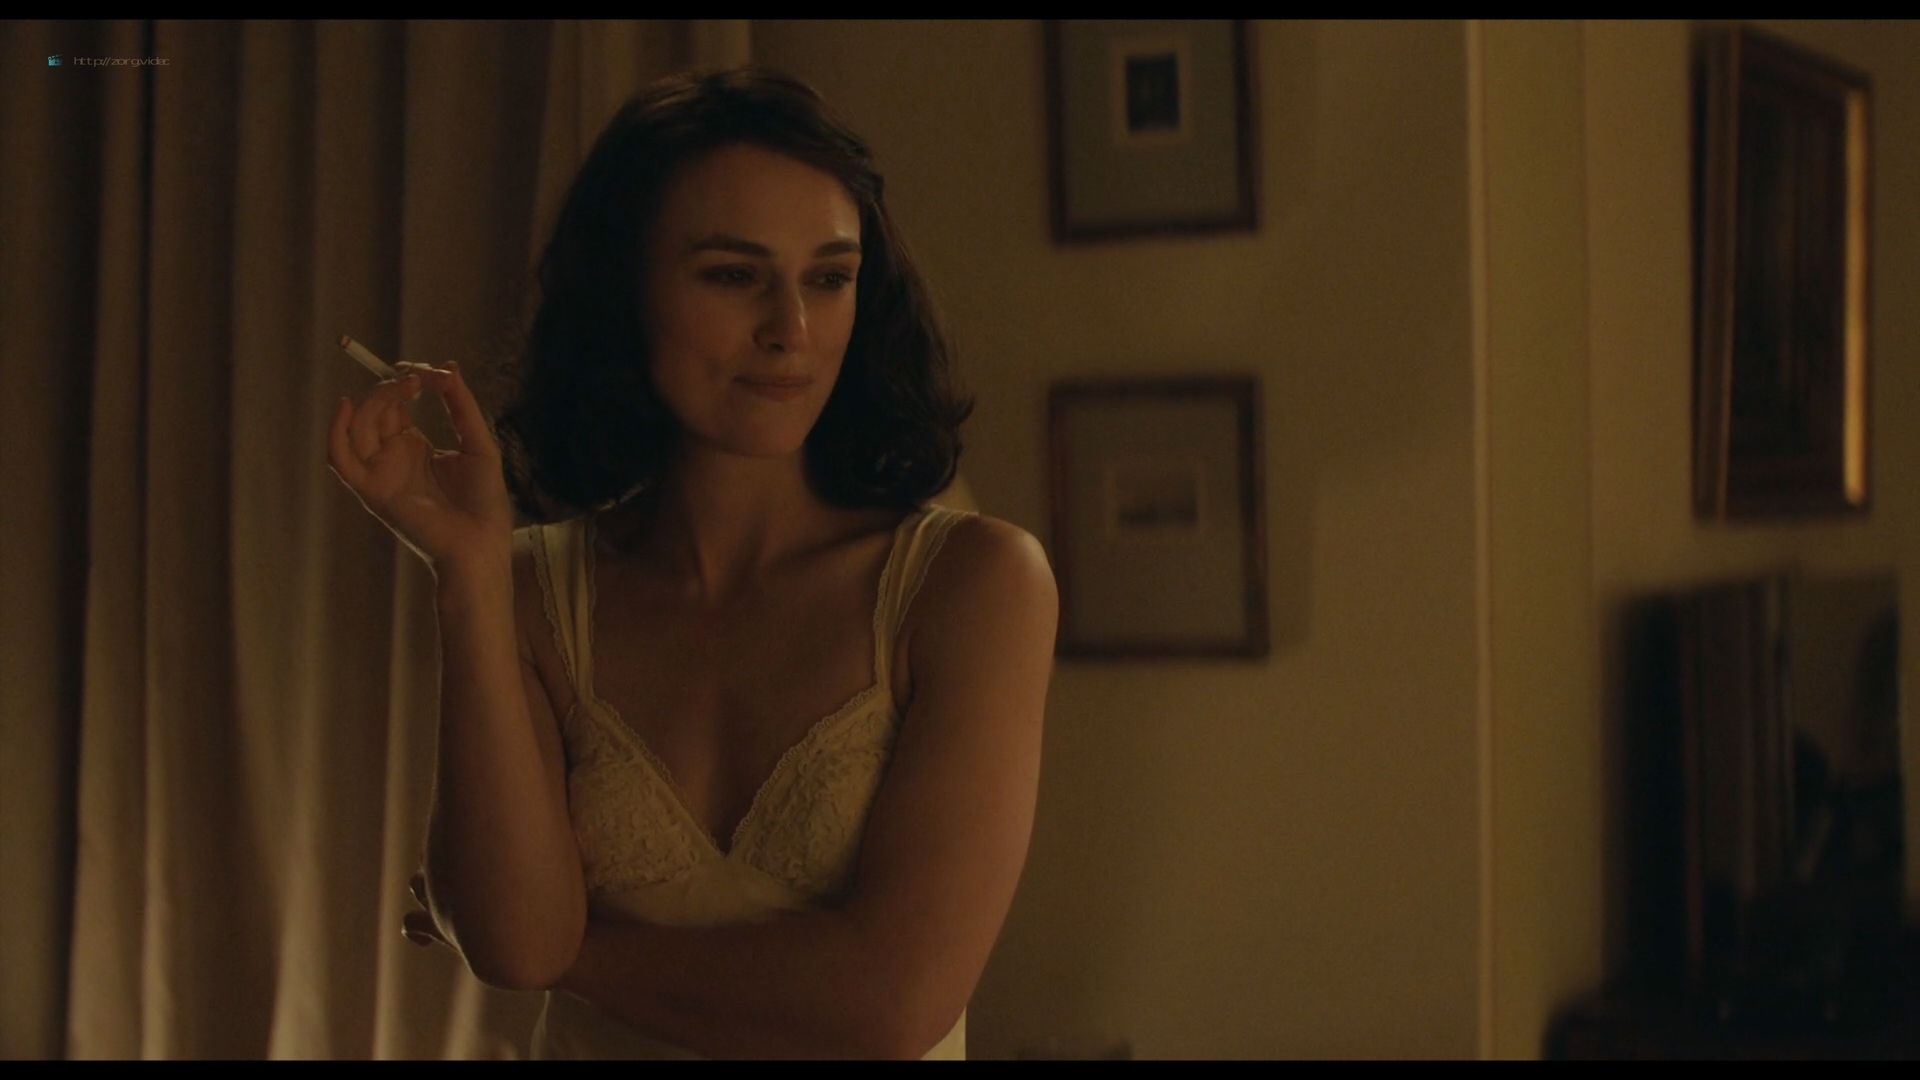 Keira Knightley sexy and hot - The Aftermath (2019) 1080p WEB (13)